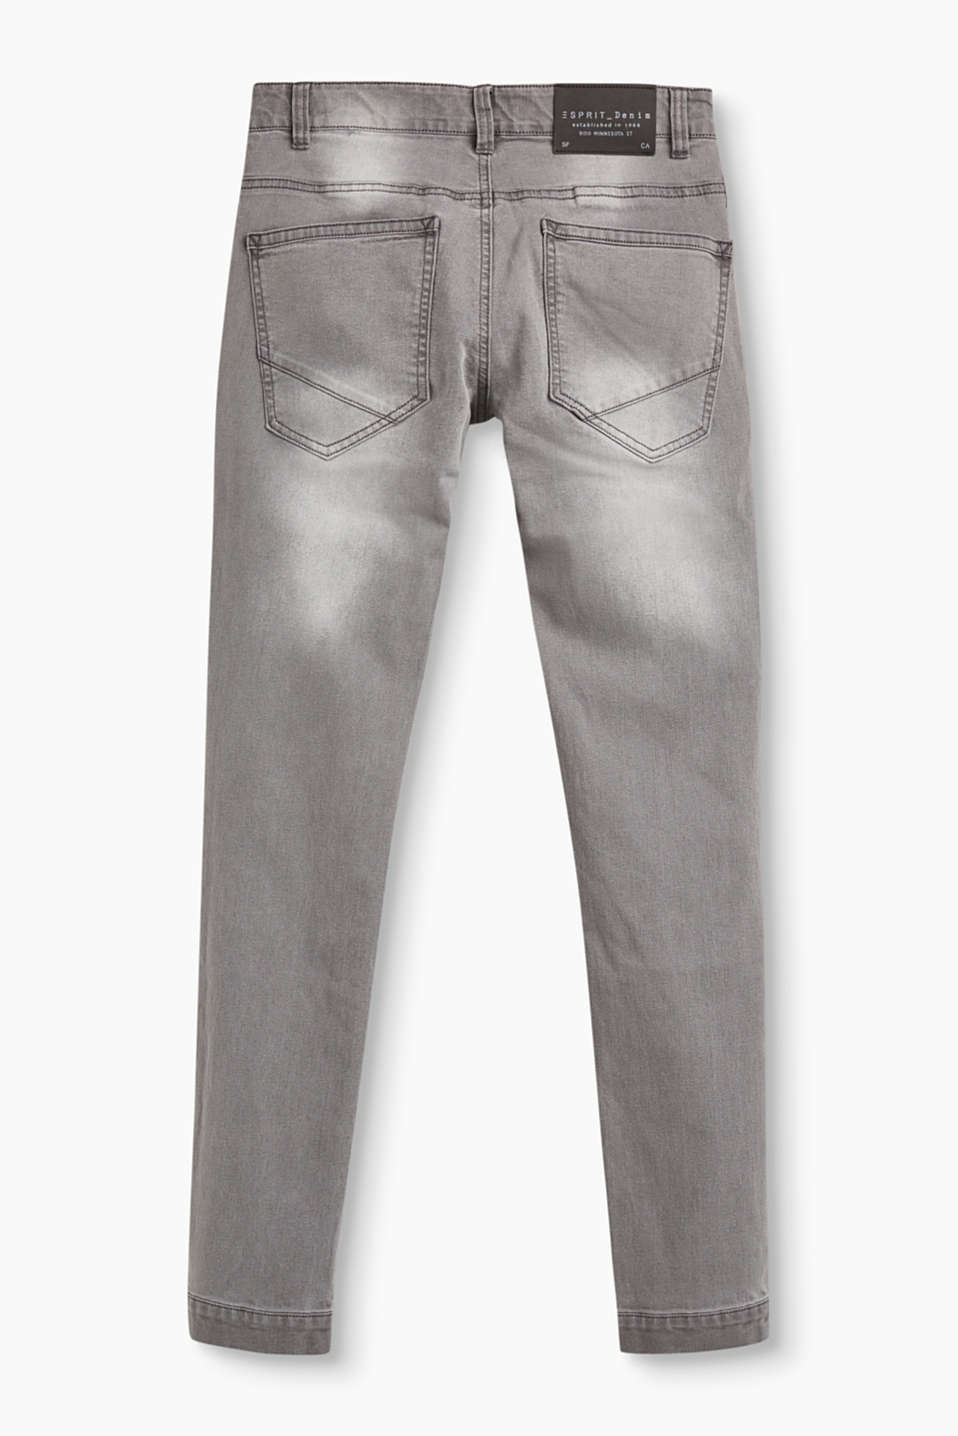 Grey stretch jeans, adjustable waist